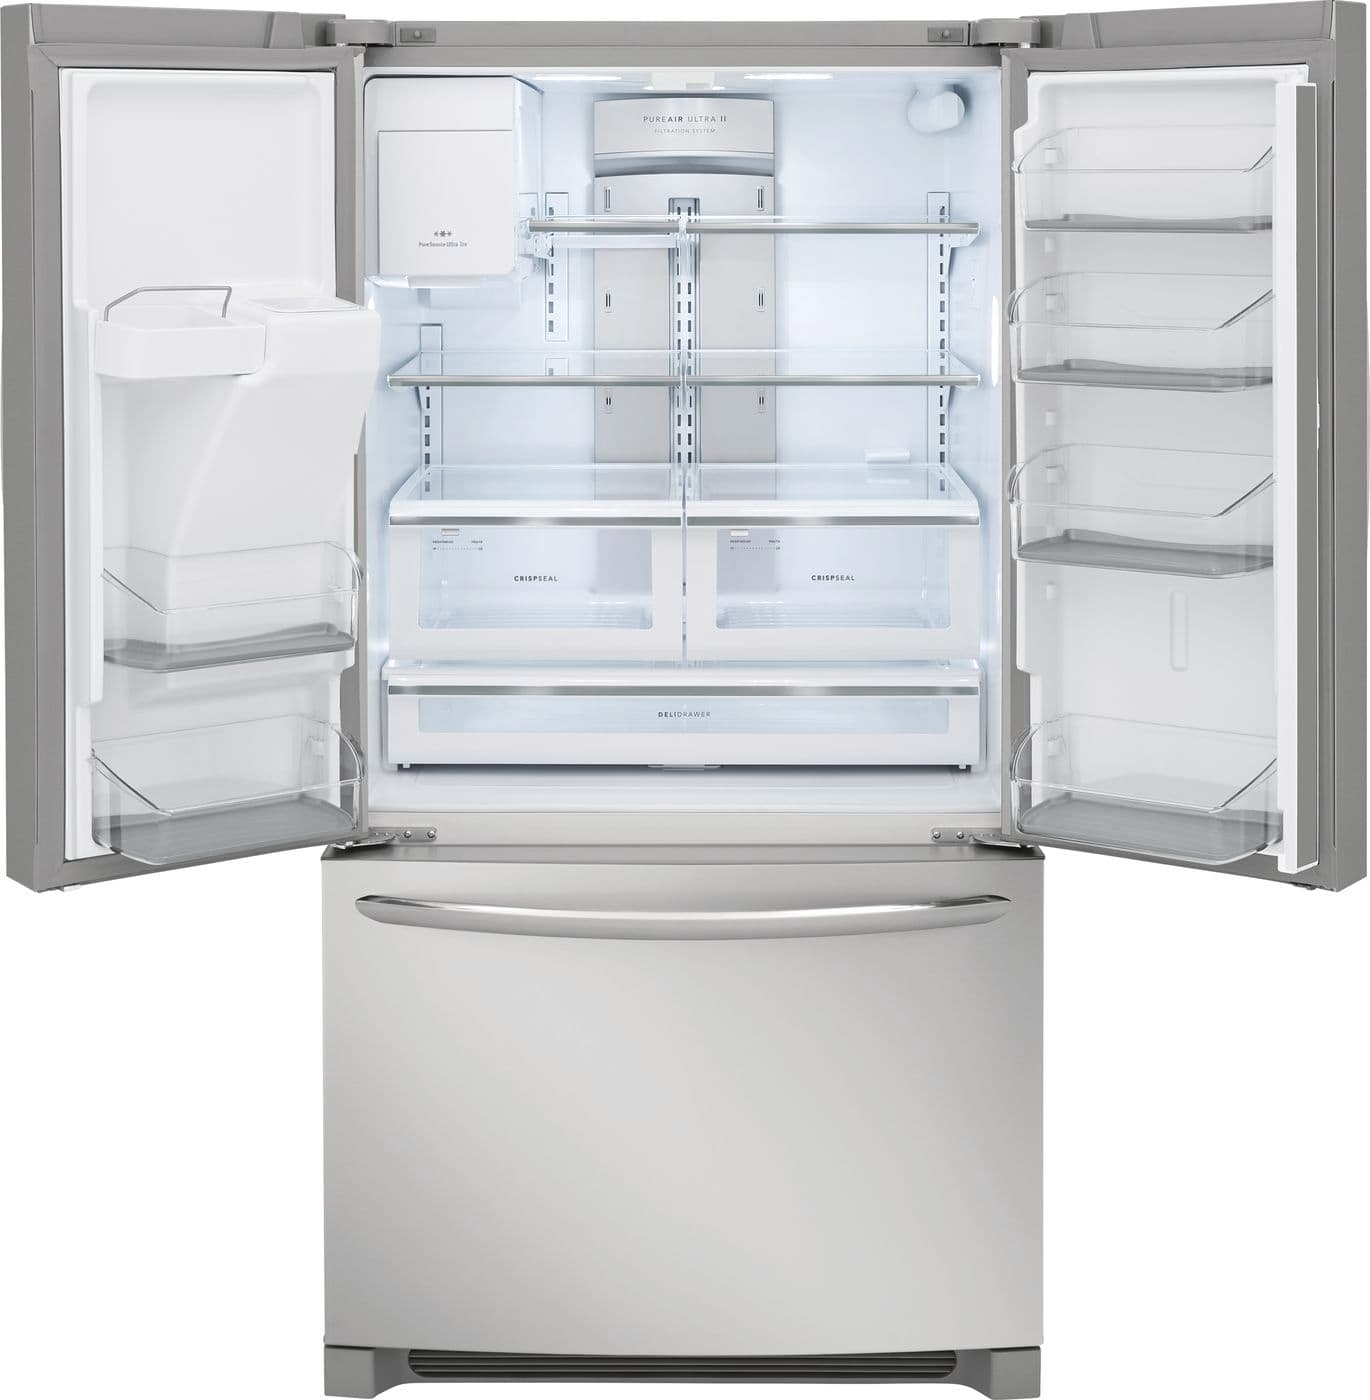 Model: FGHB2868TF | 26.8 Cu. Ft. French Door Refrigerator